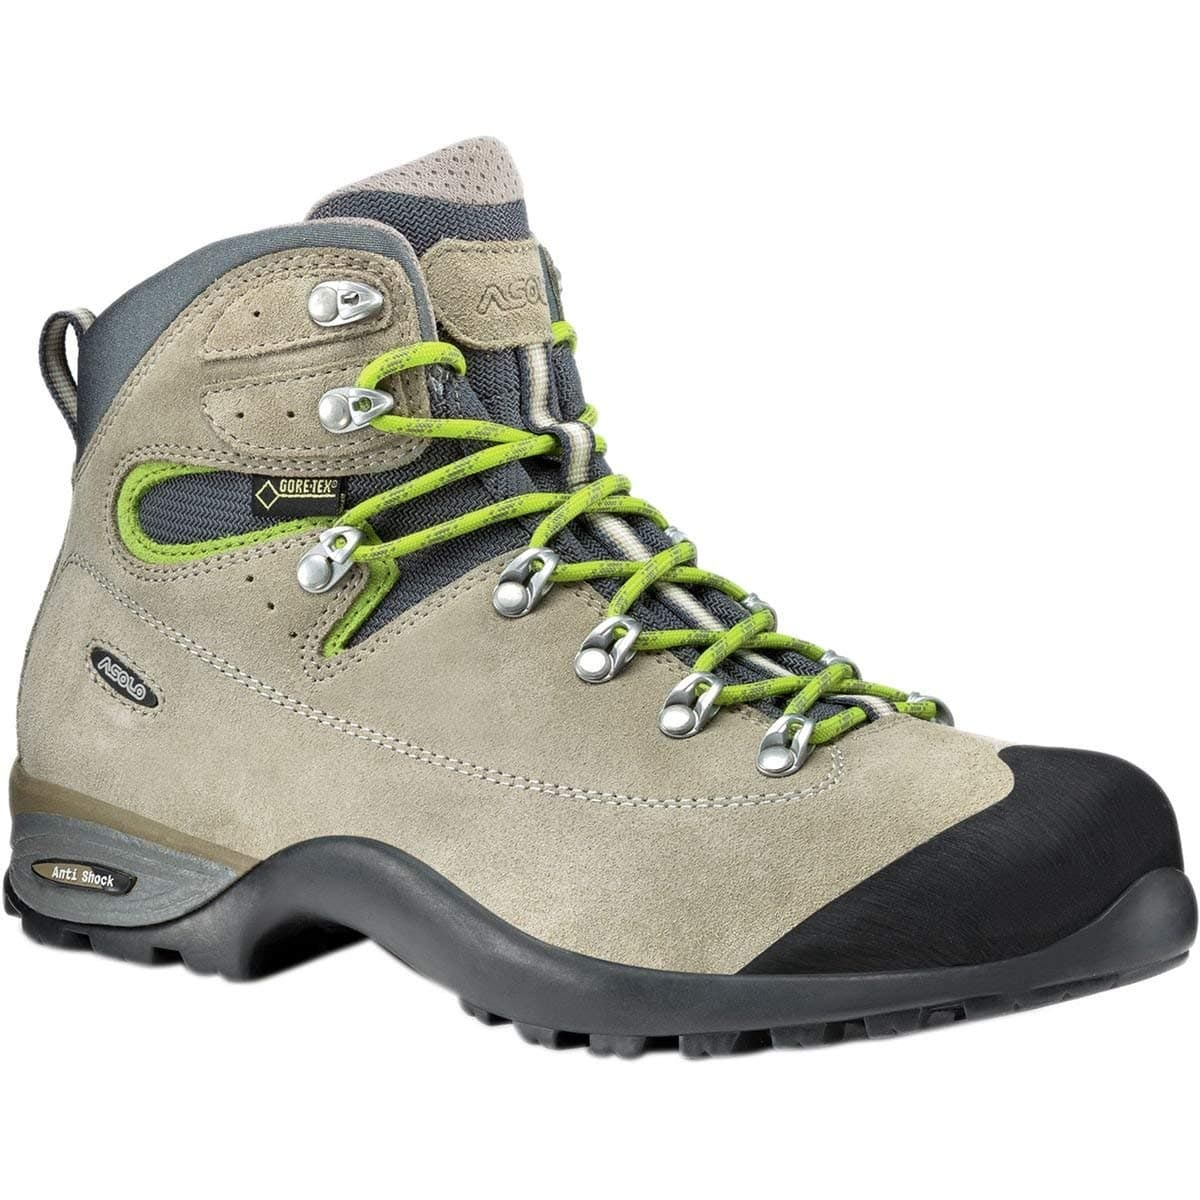 574df5e5760 Asolo Women s Tacoma GV Gore-Tex Hiking Boots (Earth).  80.50. + Free  Shipping